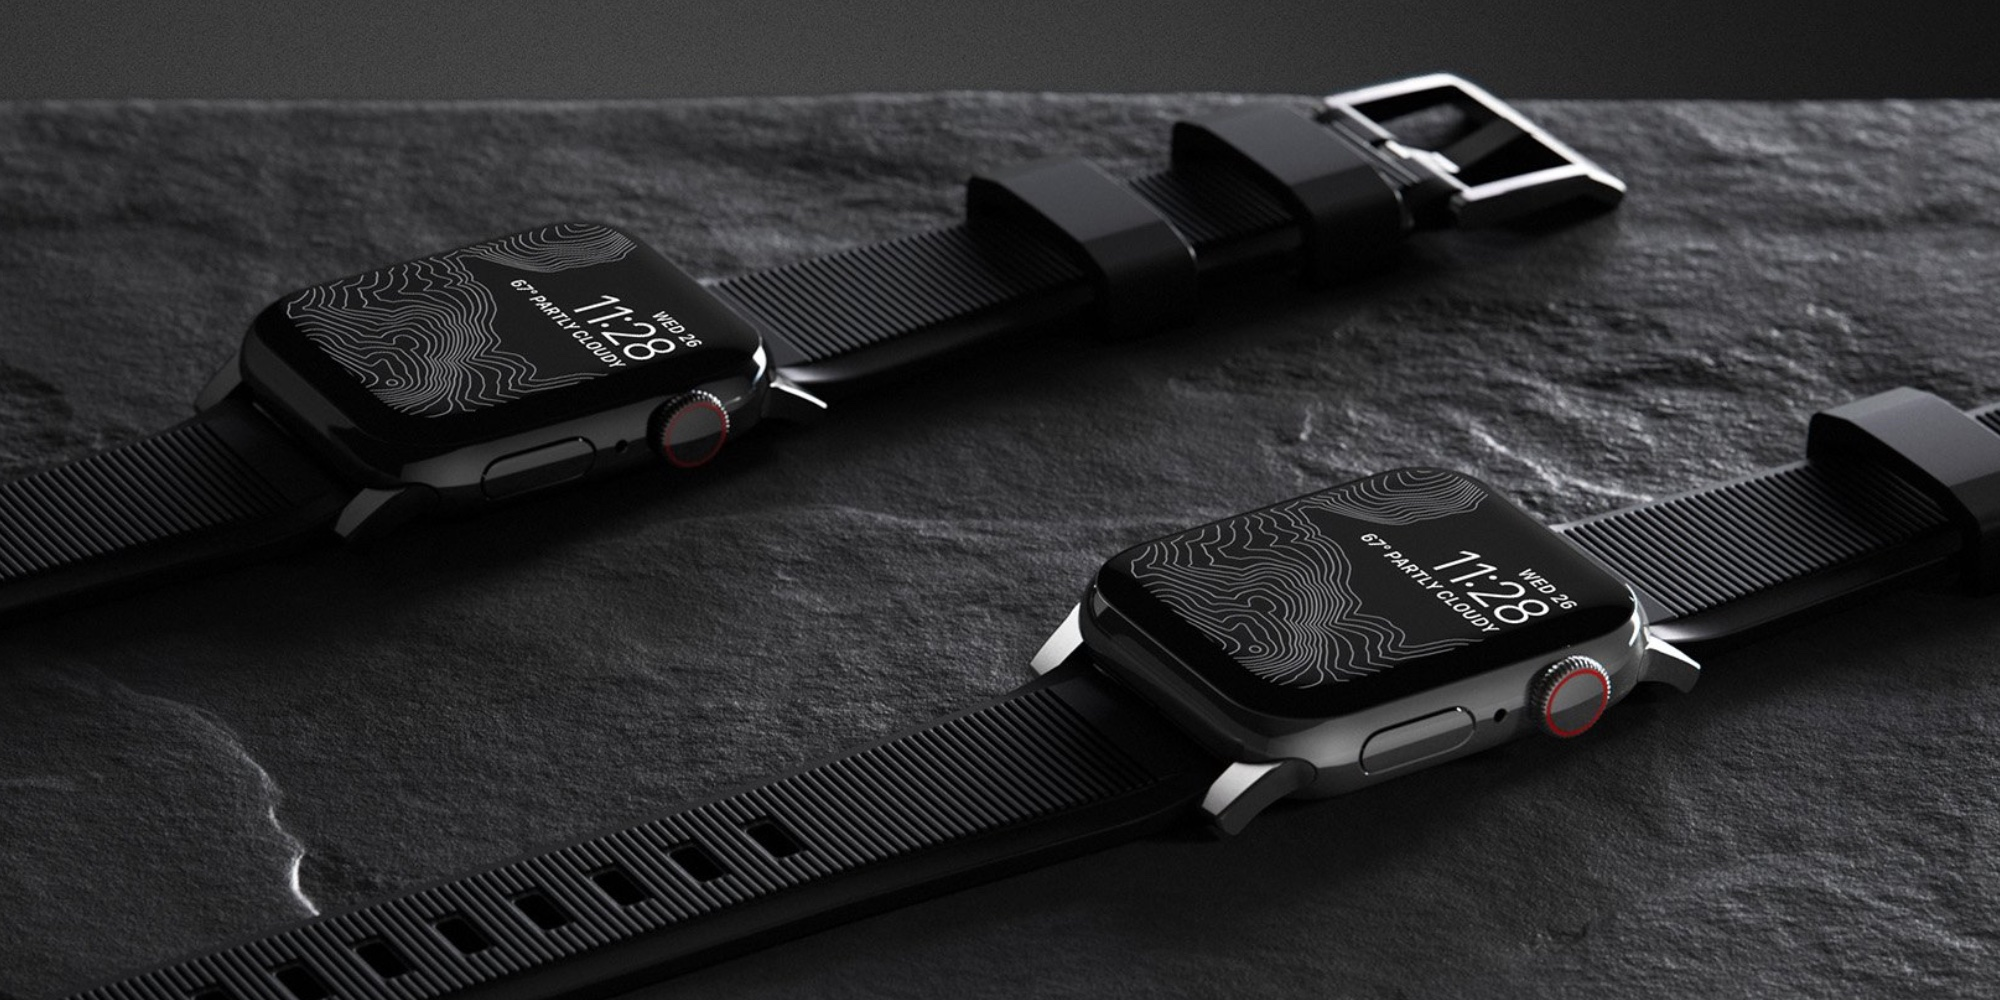 """The Apple Watch """"Explorer Edition"""" Which Will Come With A Rugged Design"""